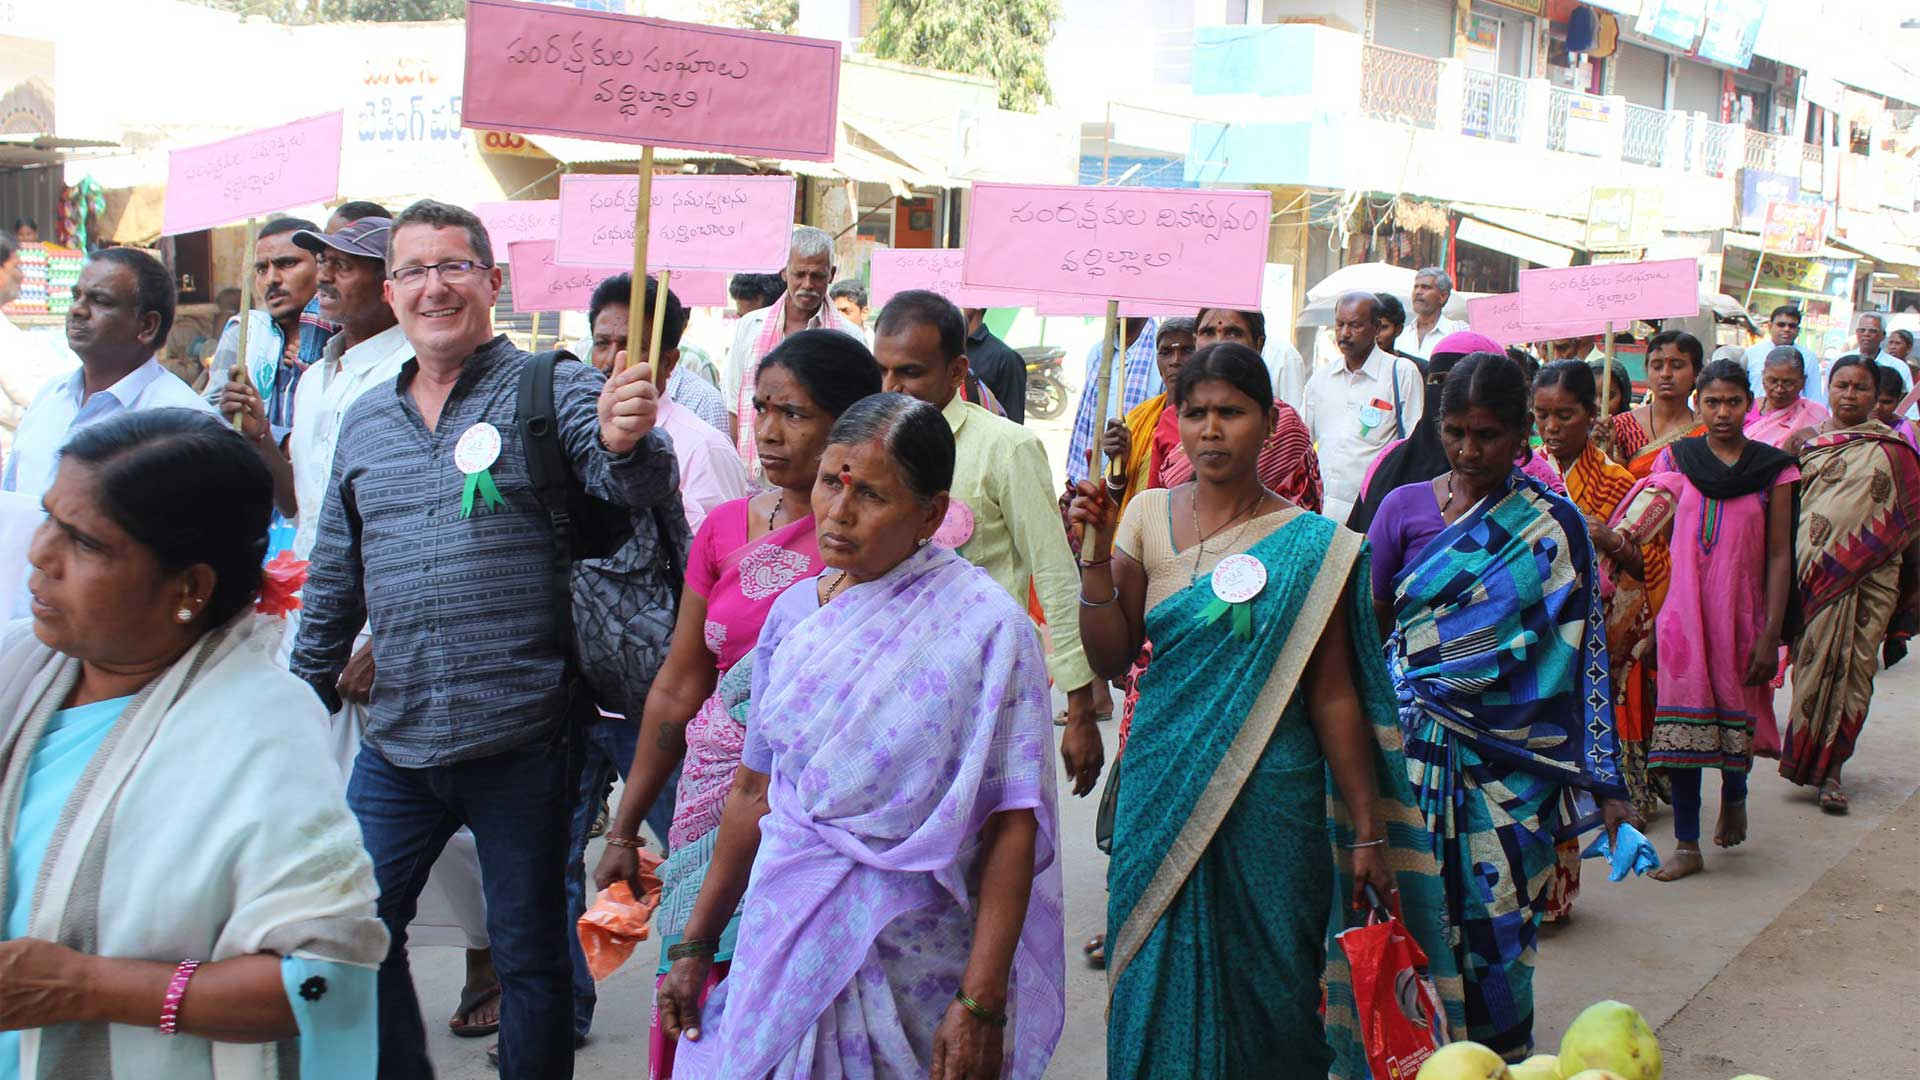 Carers Day parade in India with representative from Commonwealth Foundation